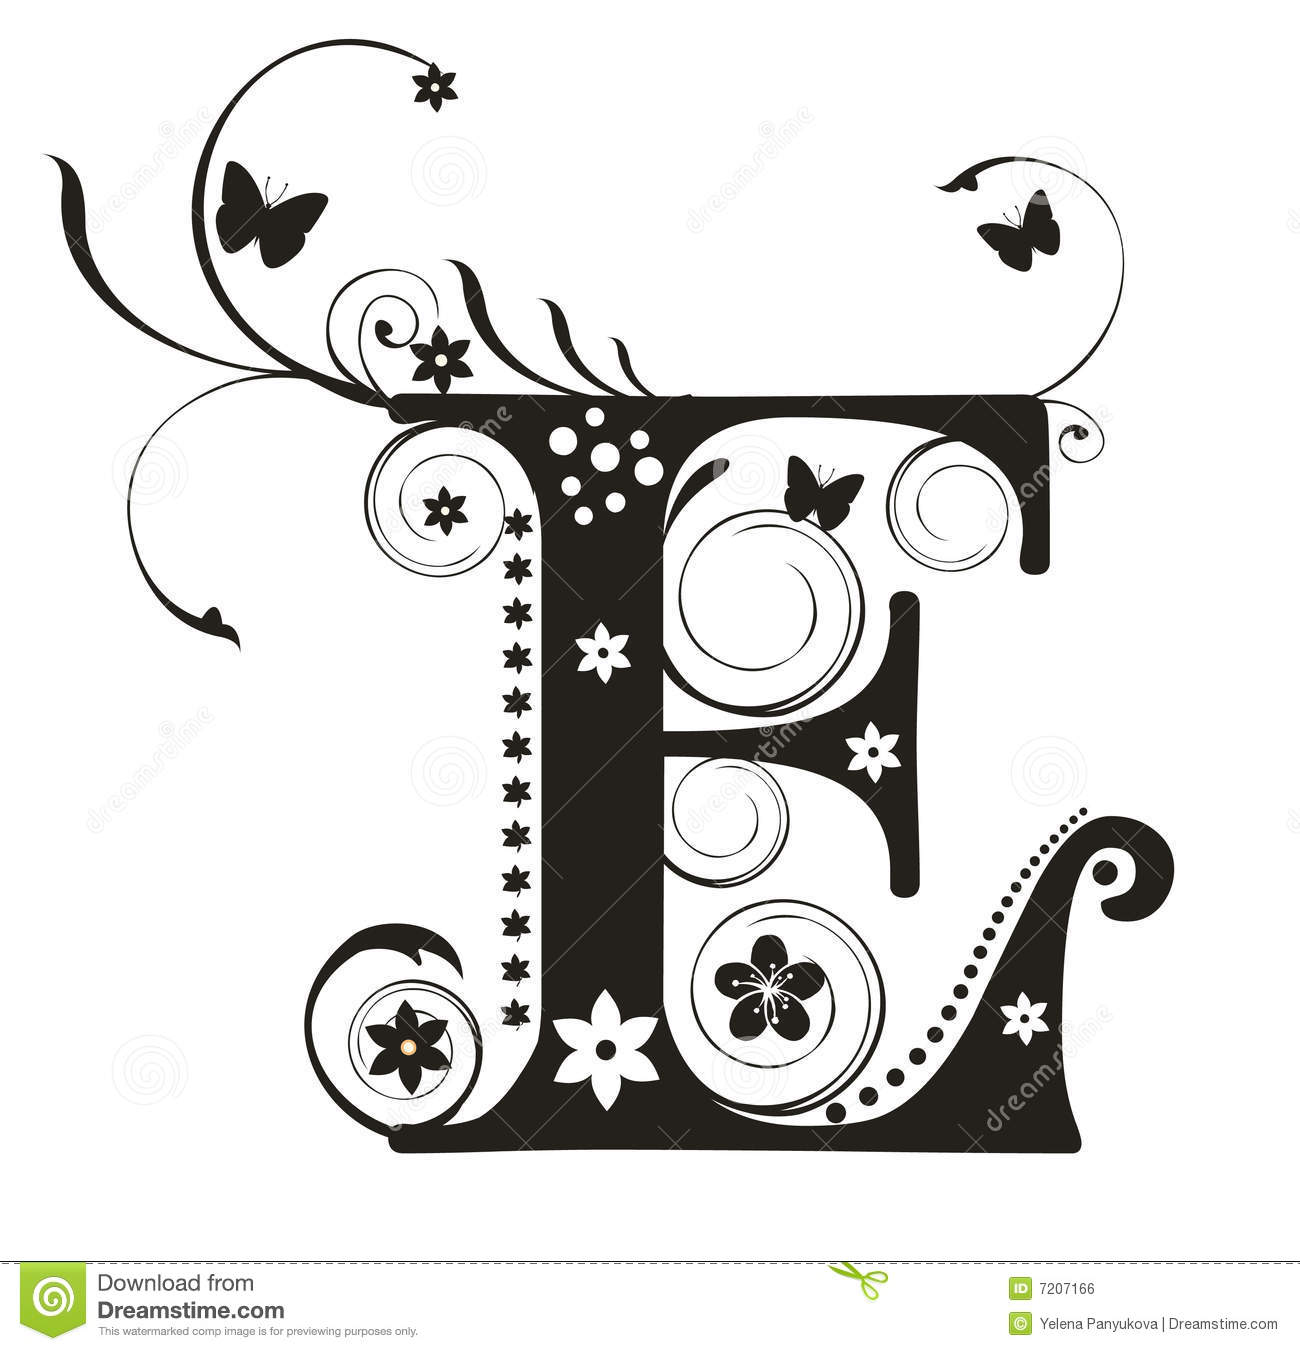 Royalty Free Stock Image Letter E Image7207166 on letter e vector